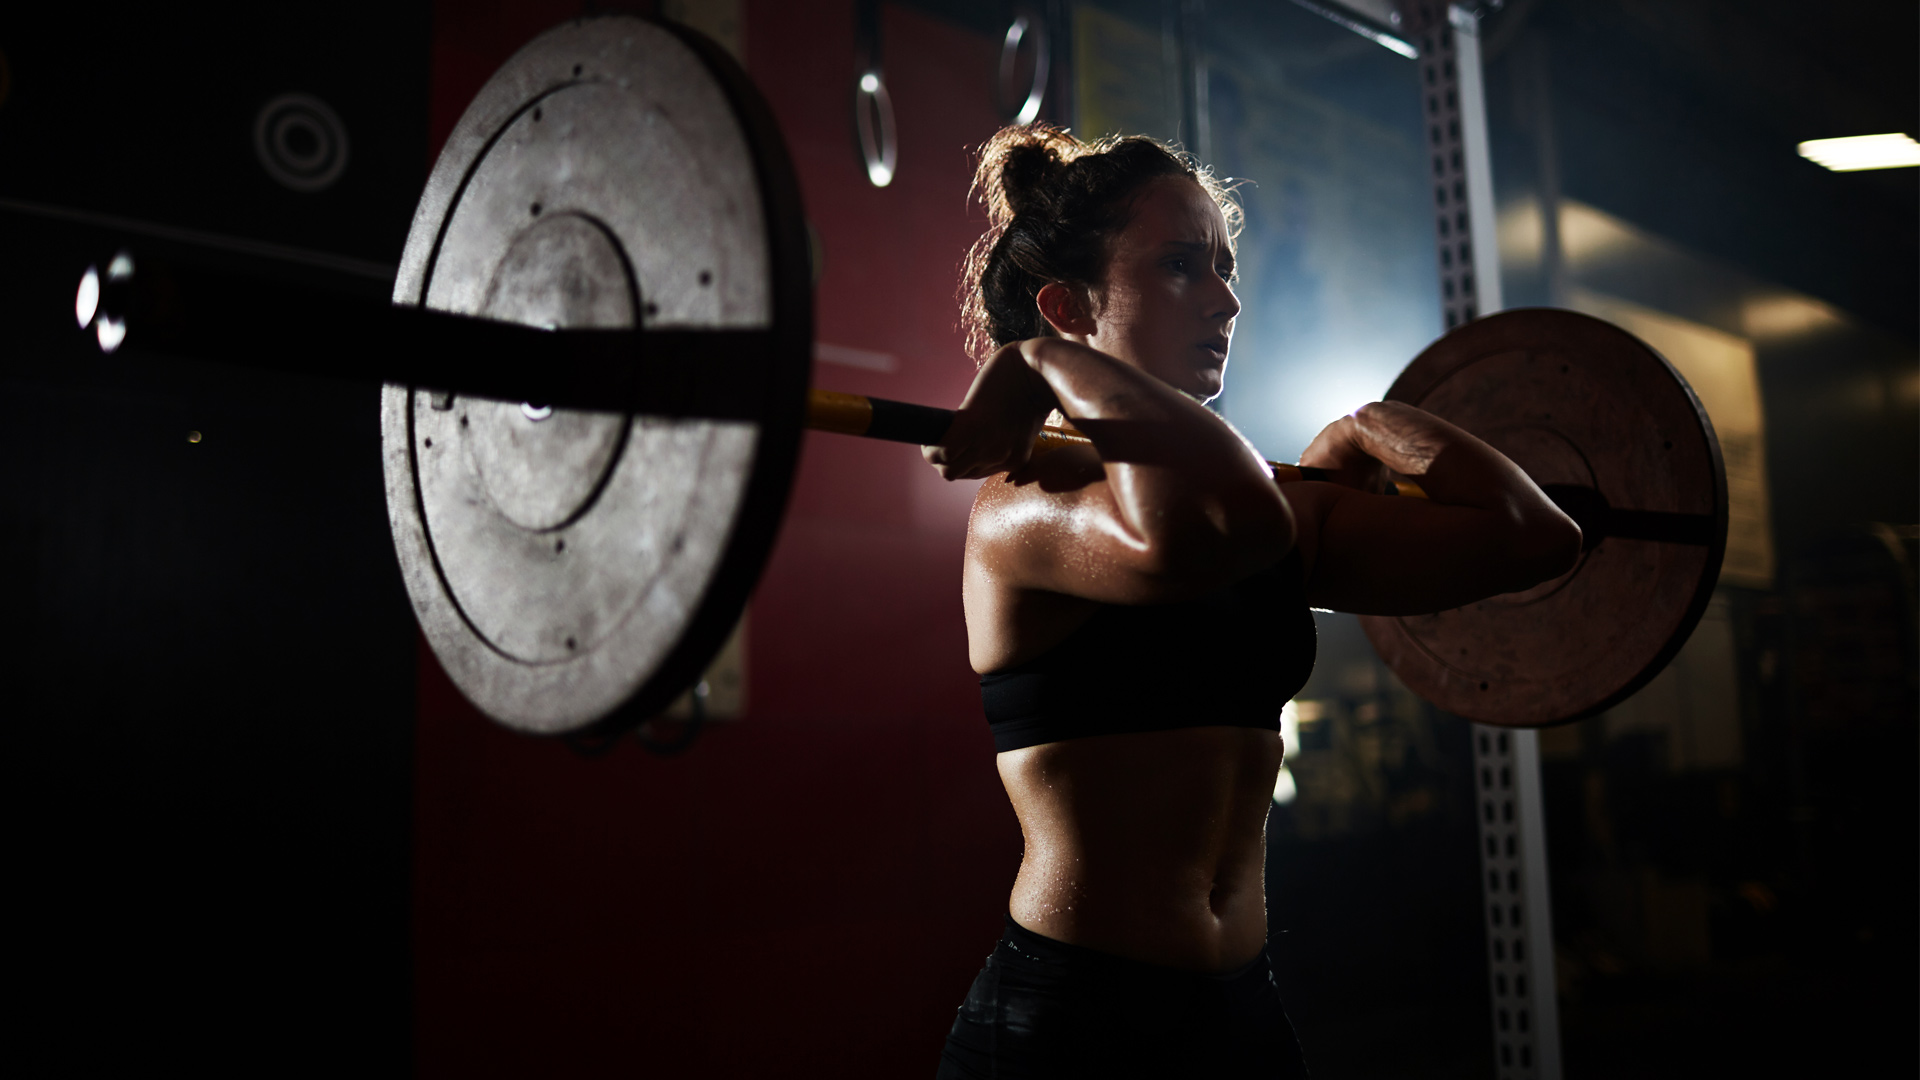 InTraining Girl Lift